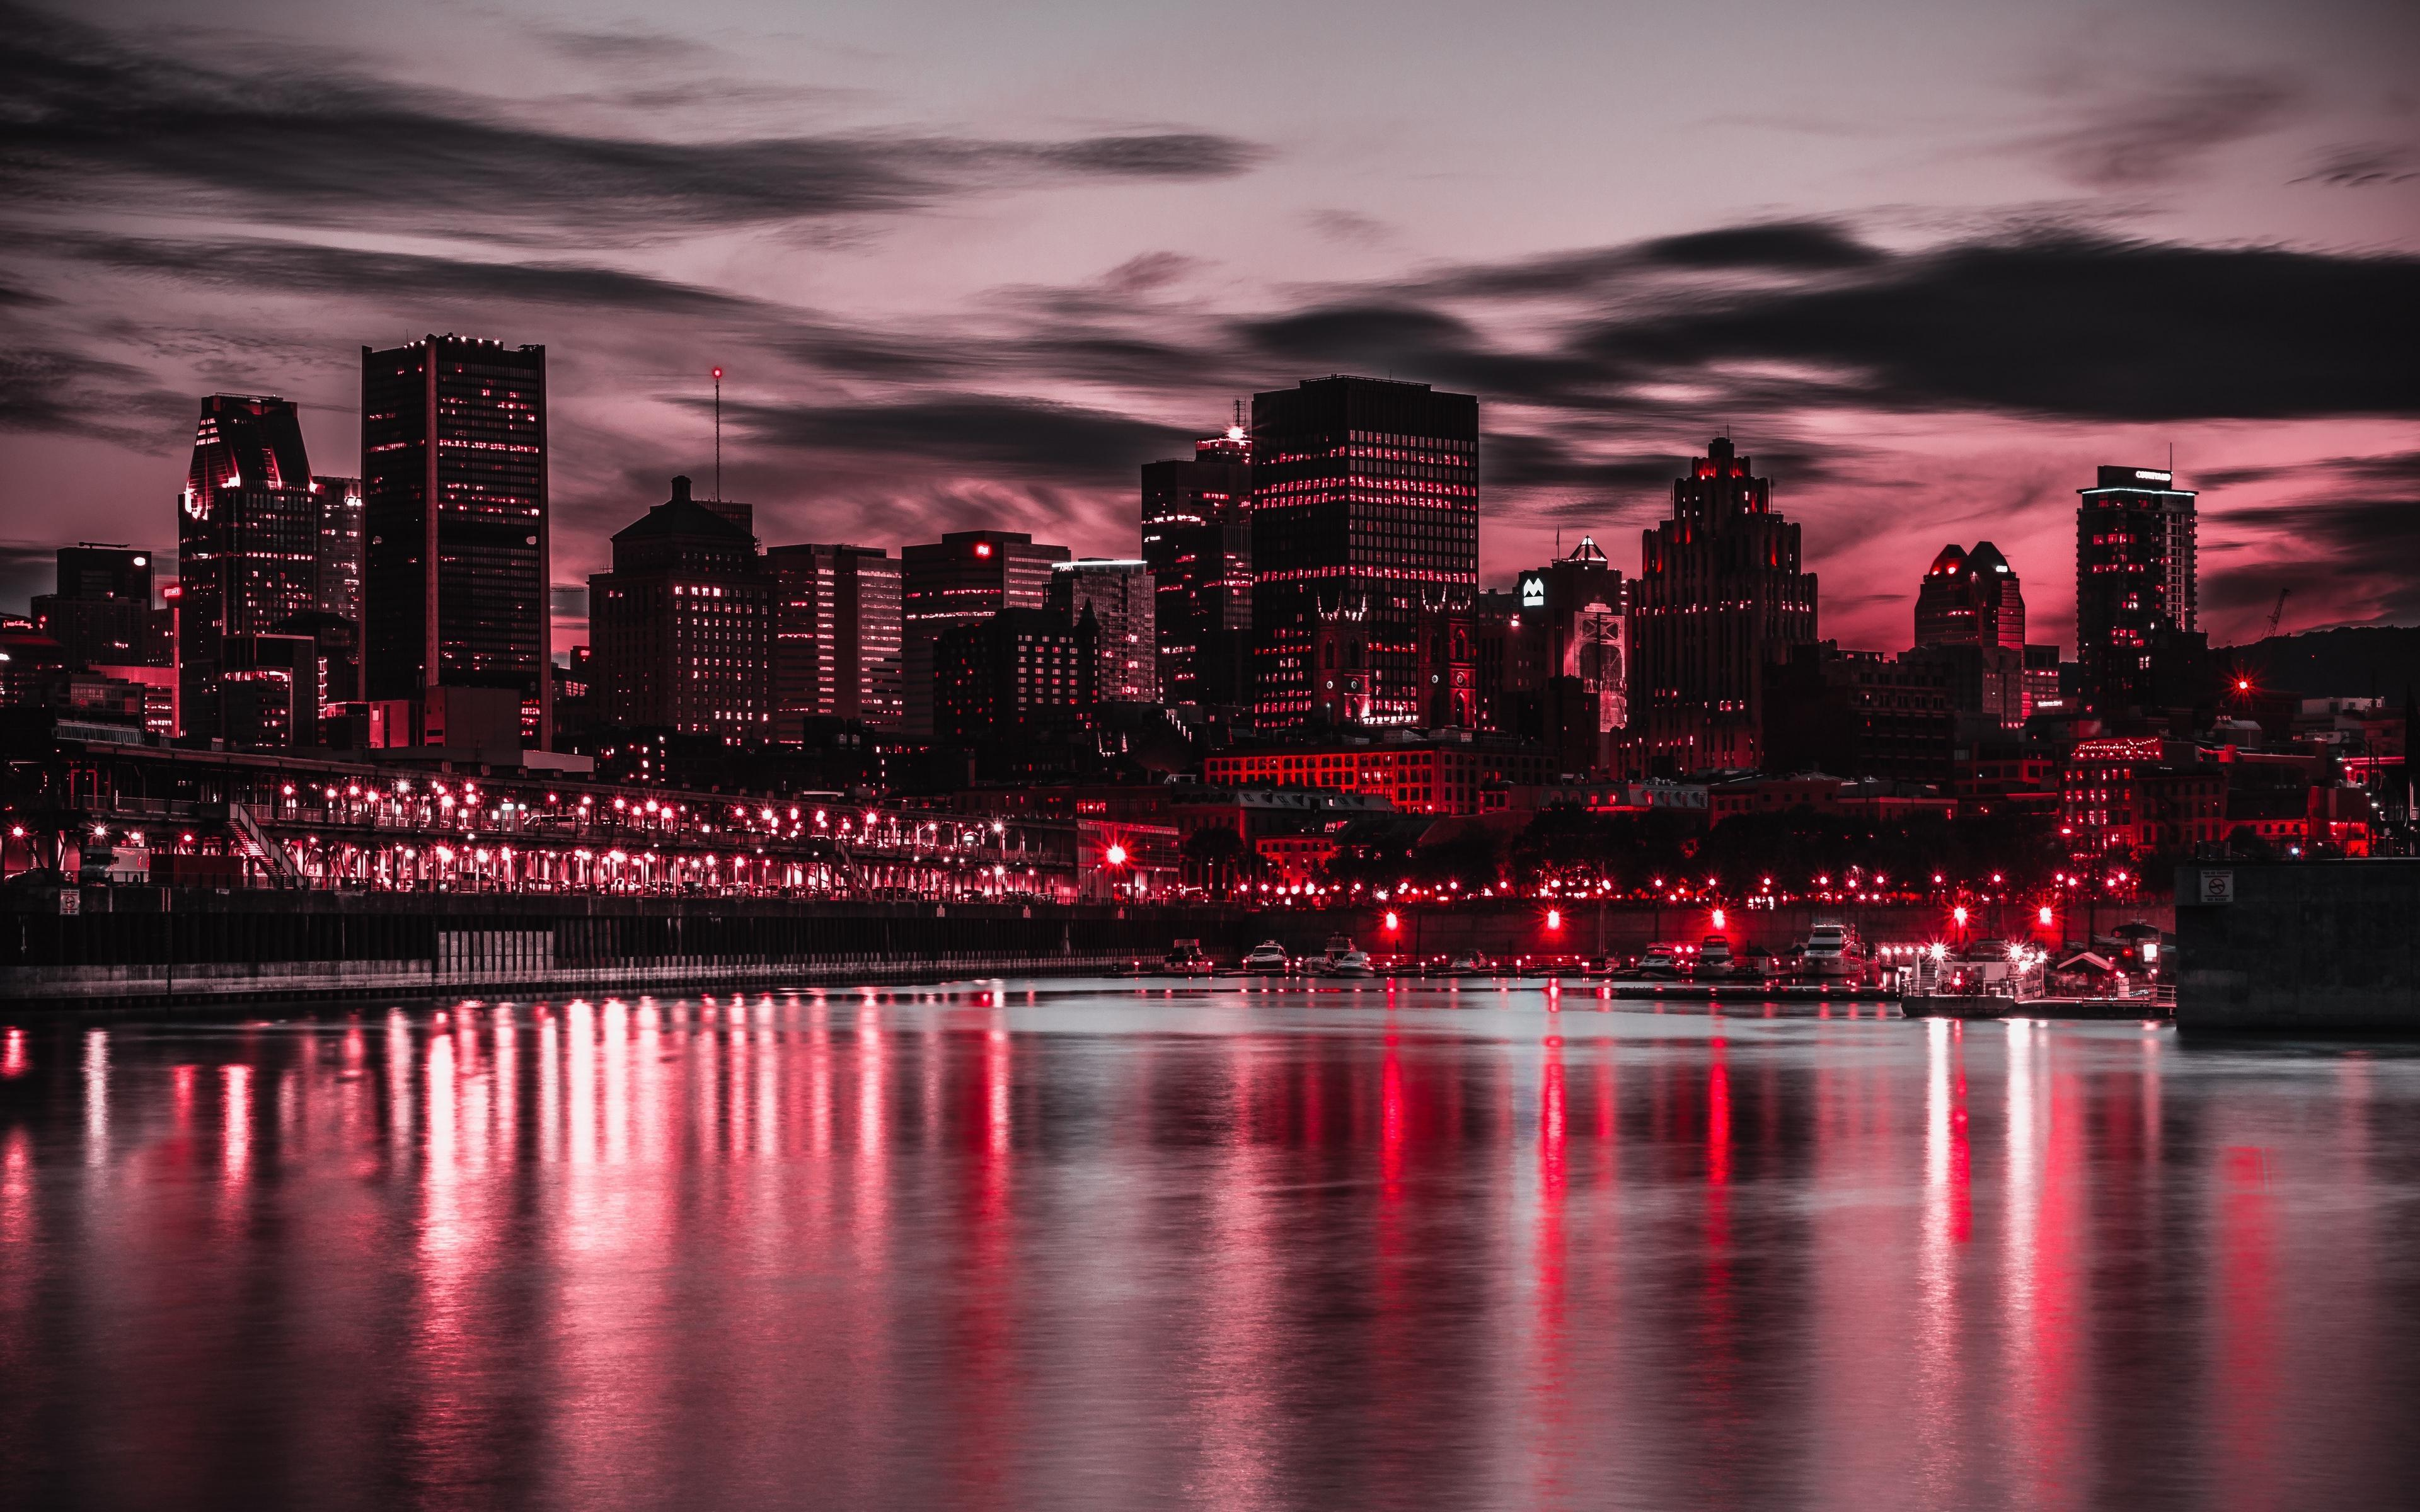 City Buildings Night Wallpapers - Wallpaper Cave